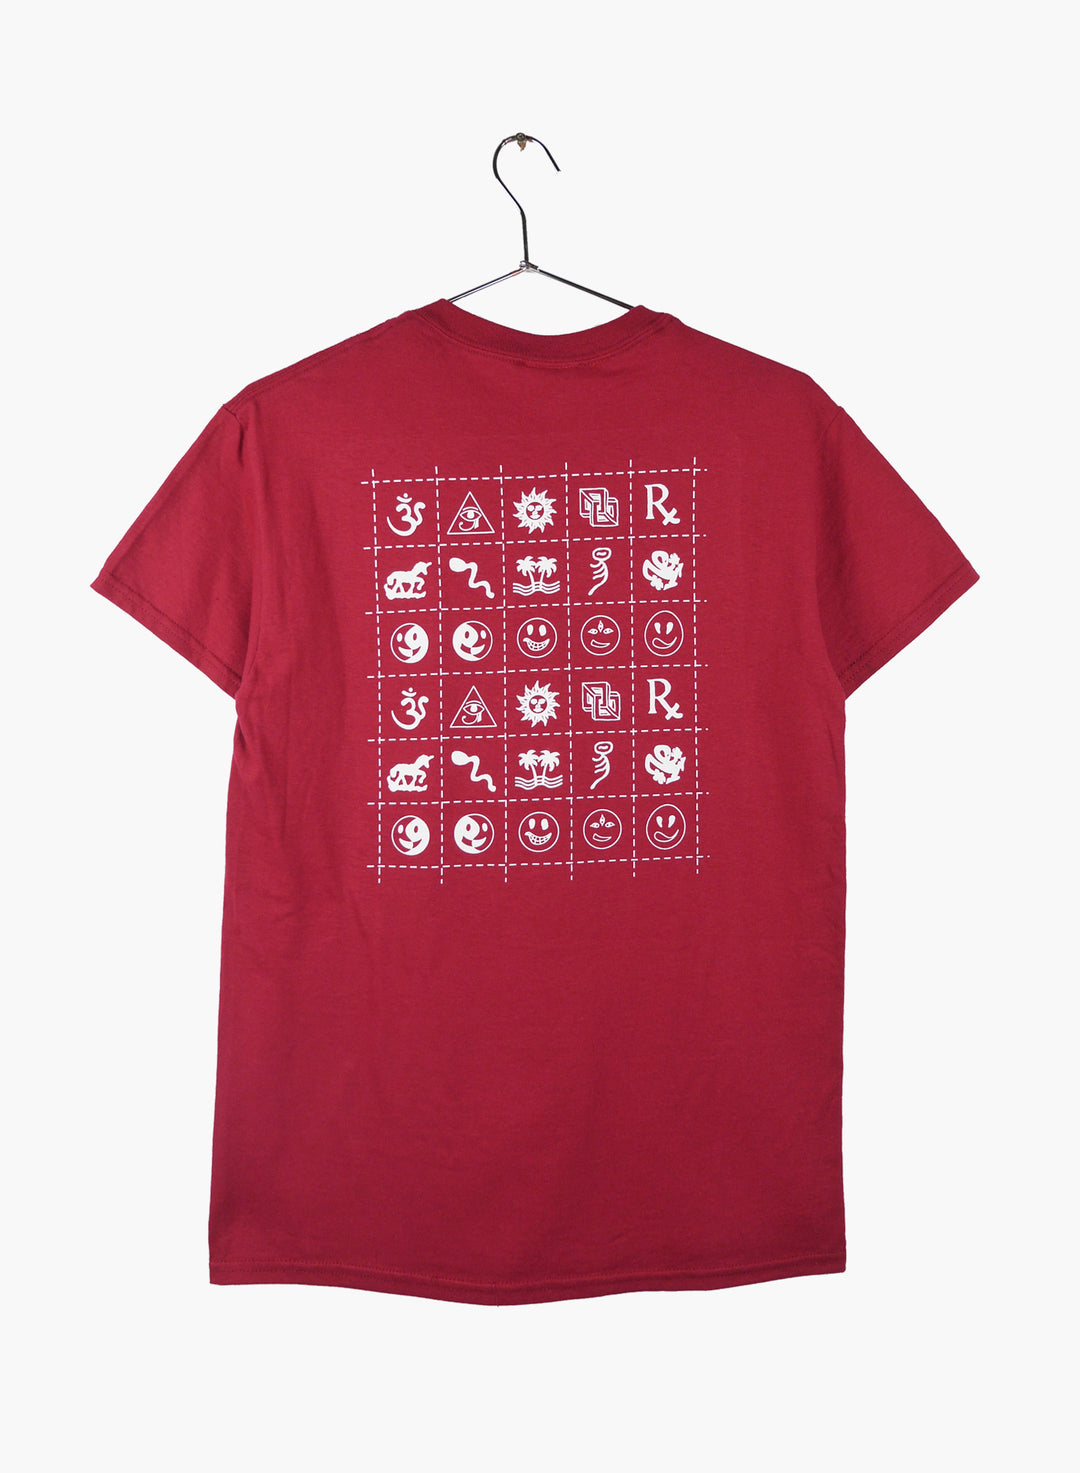 t shirt cotton burgundy with blotter design hand screen printed front and back.